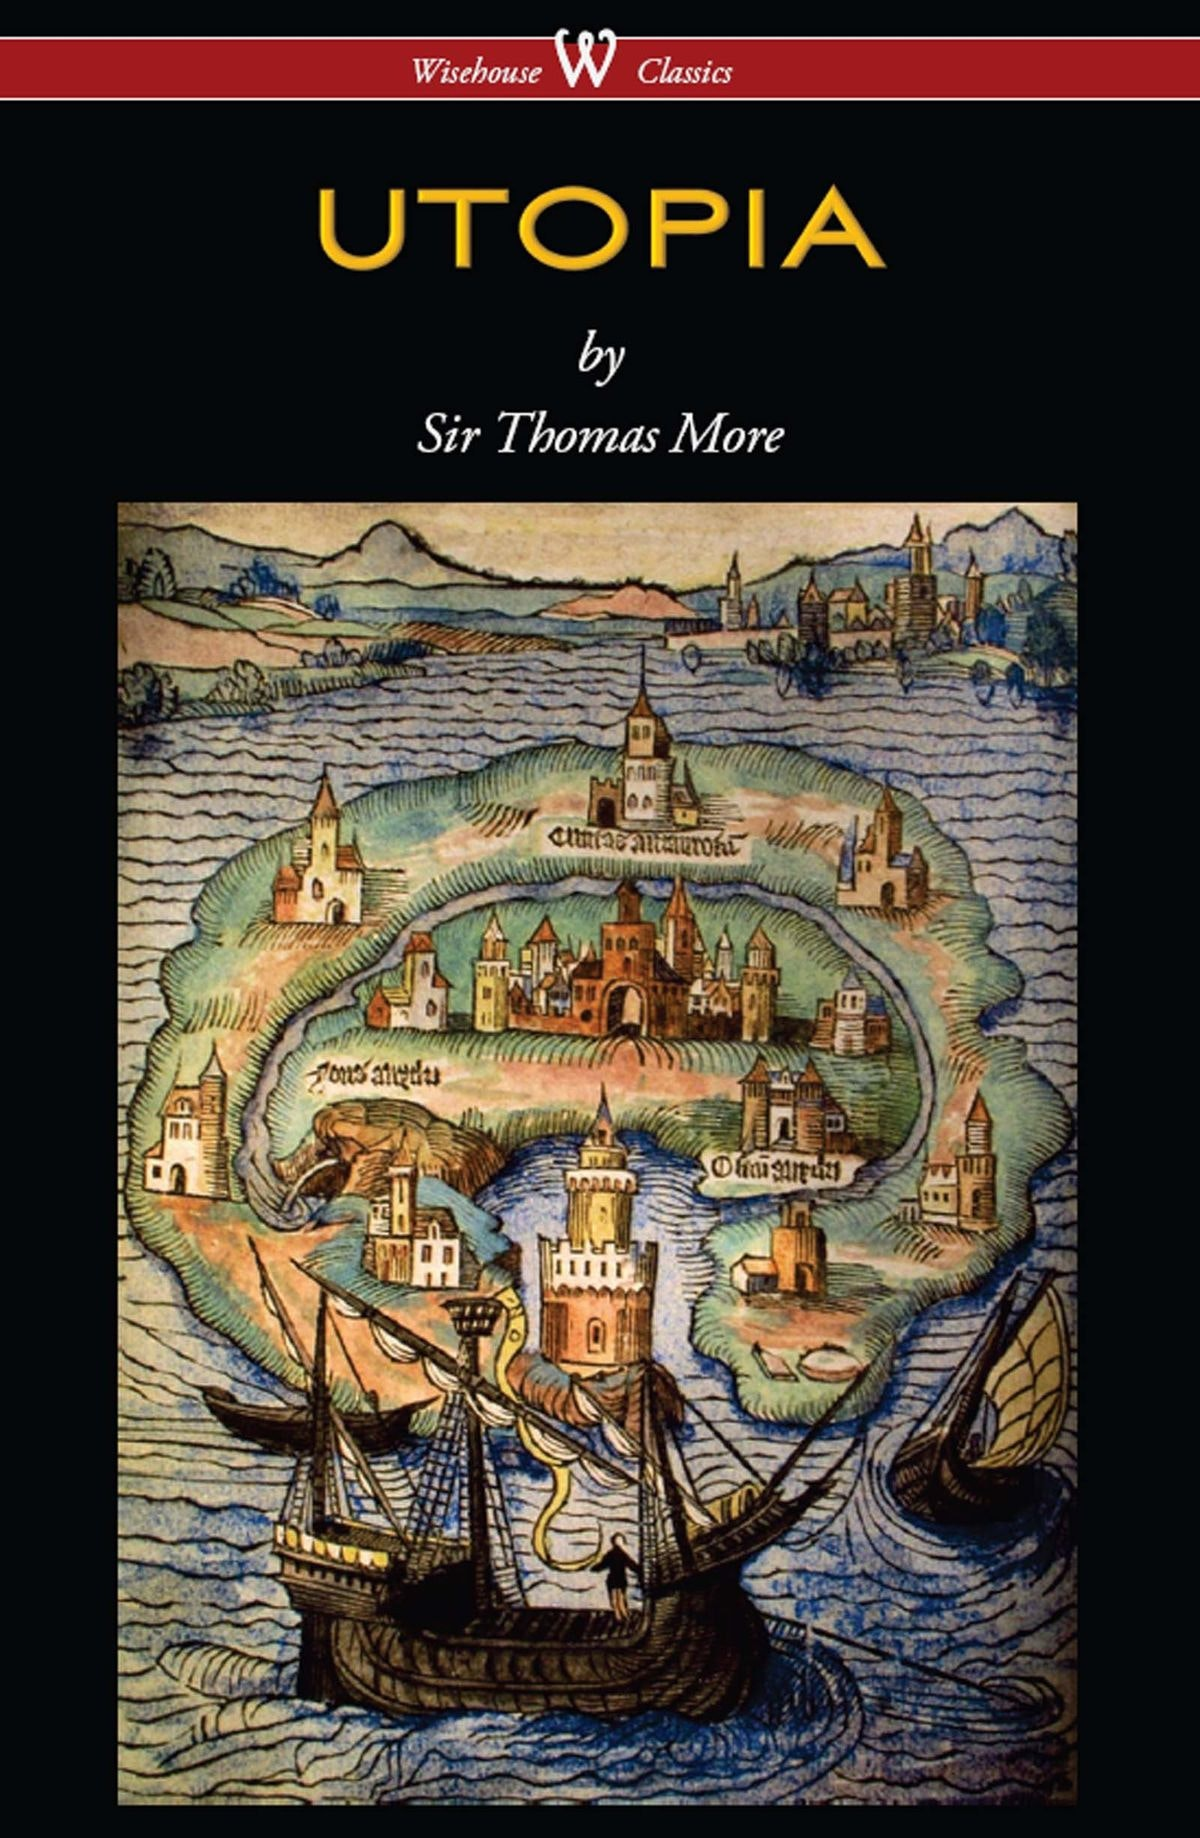 Thomas More's Utopia as republished by Wisehouse Classics (Illustration by A. Holbein). Wisehouse Classics